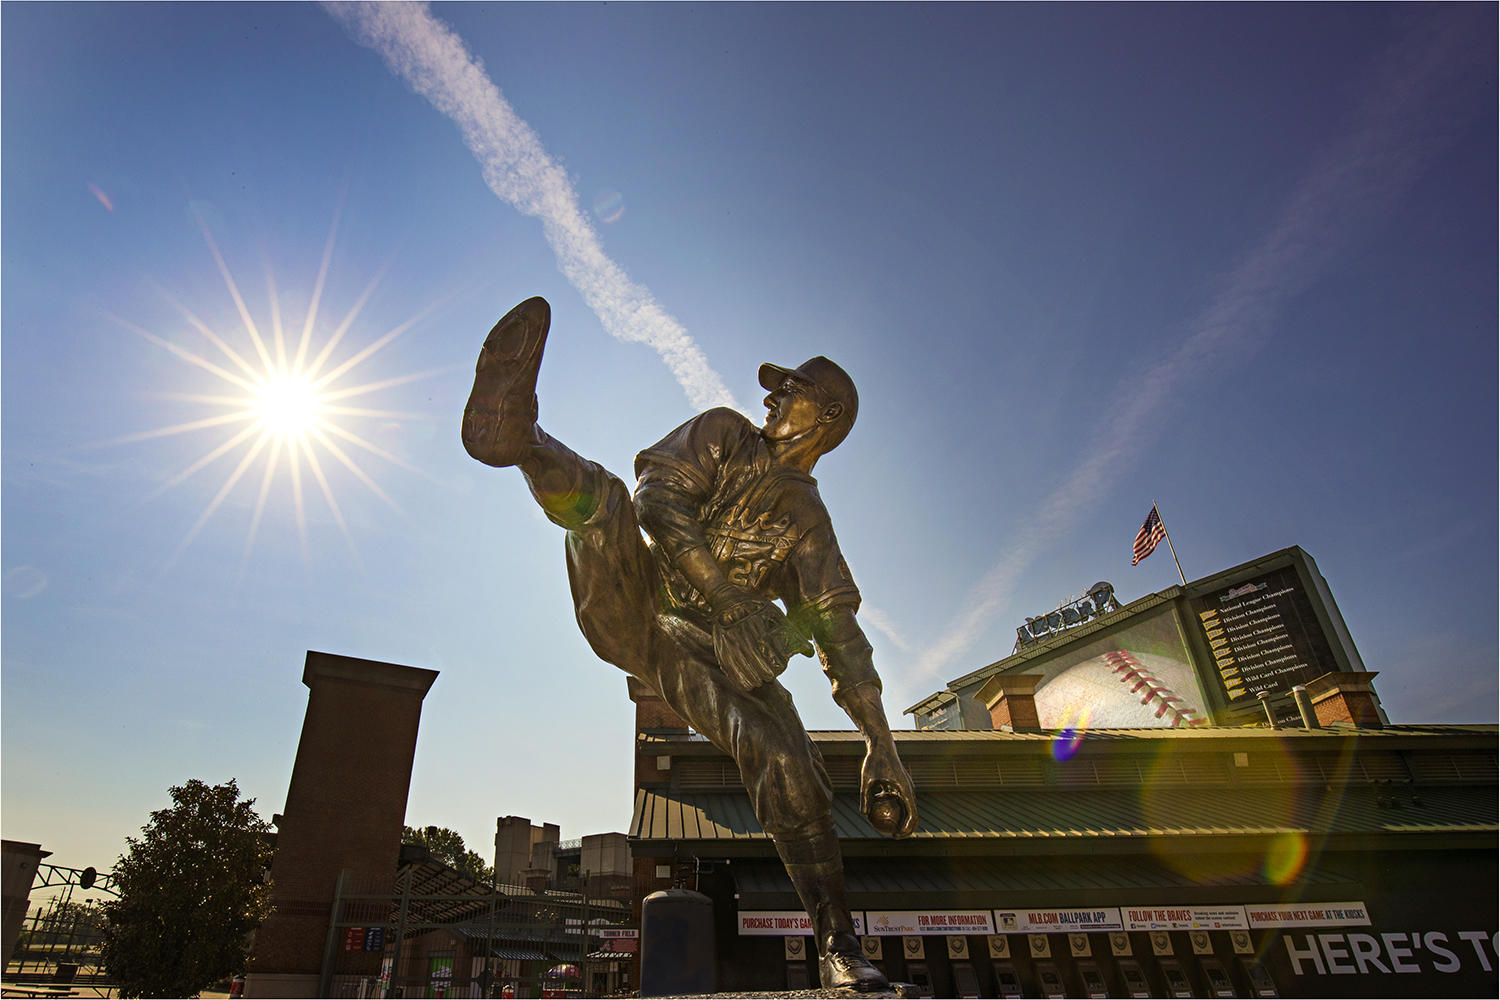 This statue of Hall of Famer Warren Spahn, stands inside the Braves' Turner Field in Atlanta, Georgia. (Jean Fruth / National Baseball Hall of Fame)